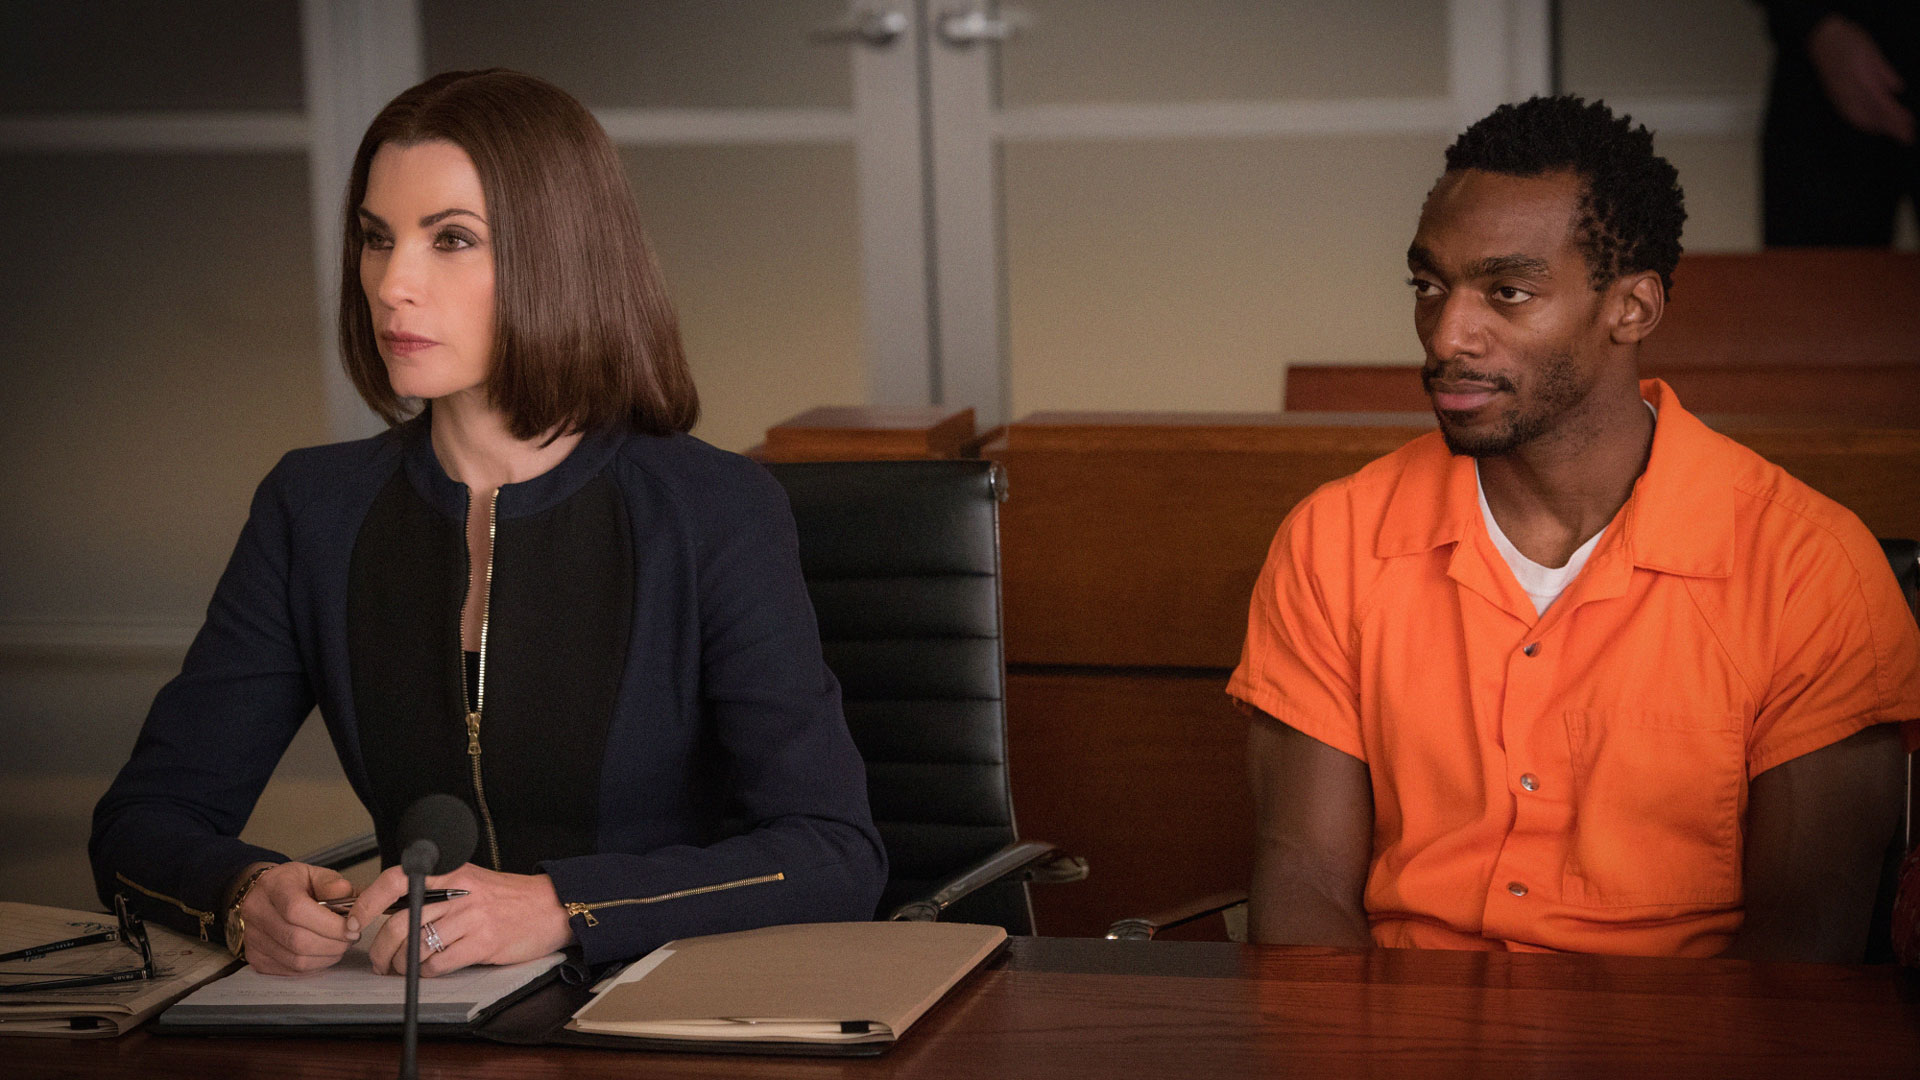 Julianna Margulies as Alicia Florrick and Daniel J. Watts as Clayton Riggs